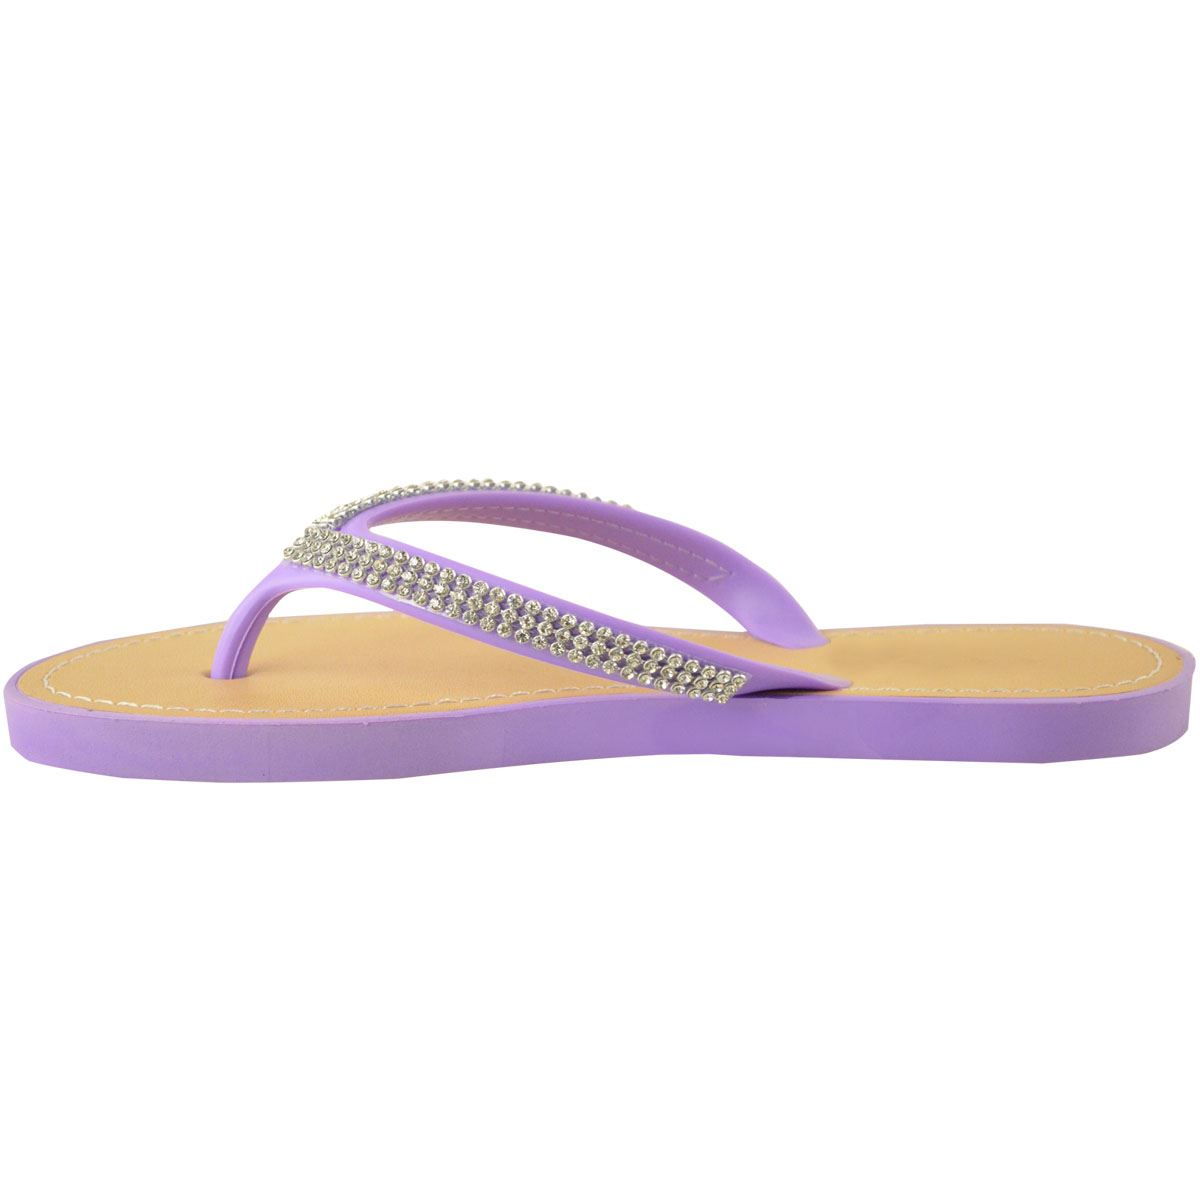 New Jelly Sandals Womens Ladies Diamante Summer Holiday -5999